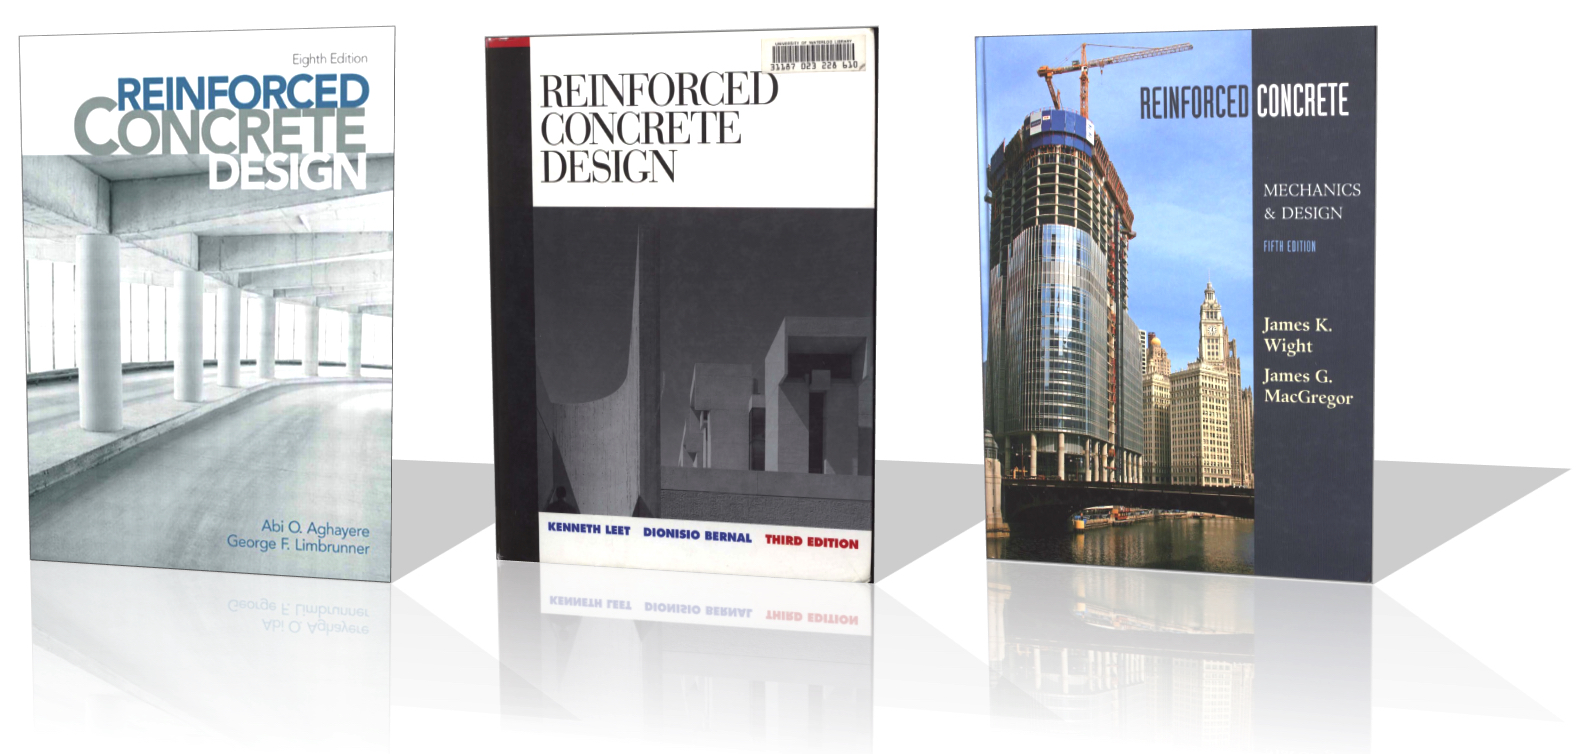 wight macgregor reinforced concrete solution manual